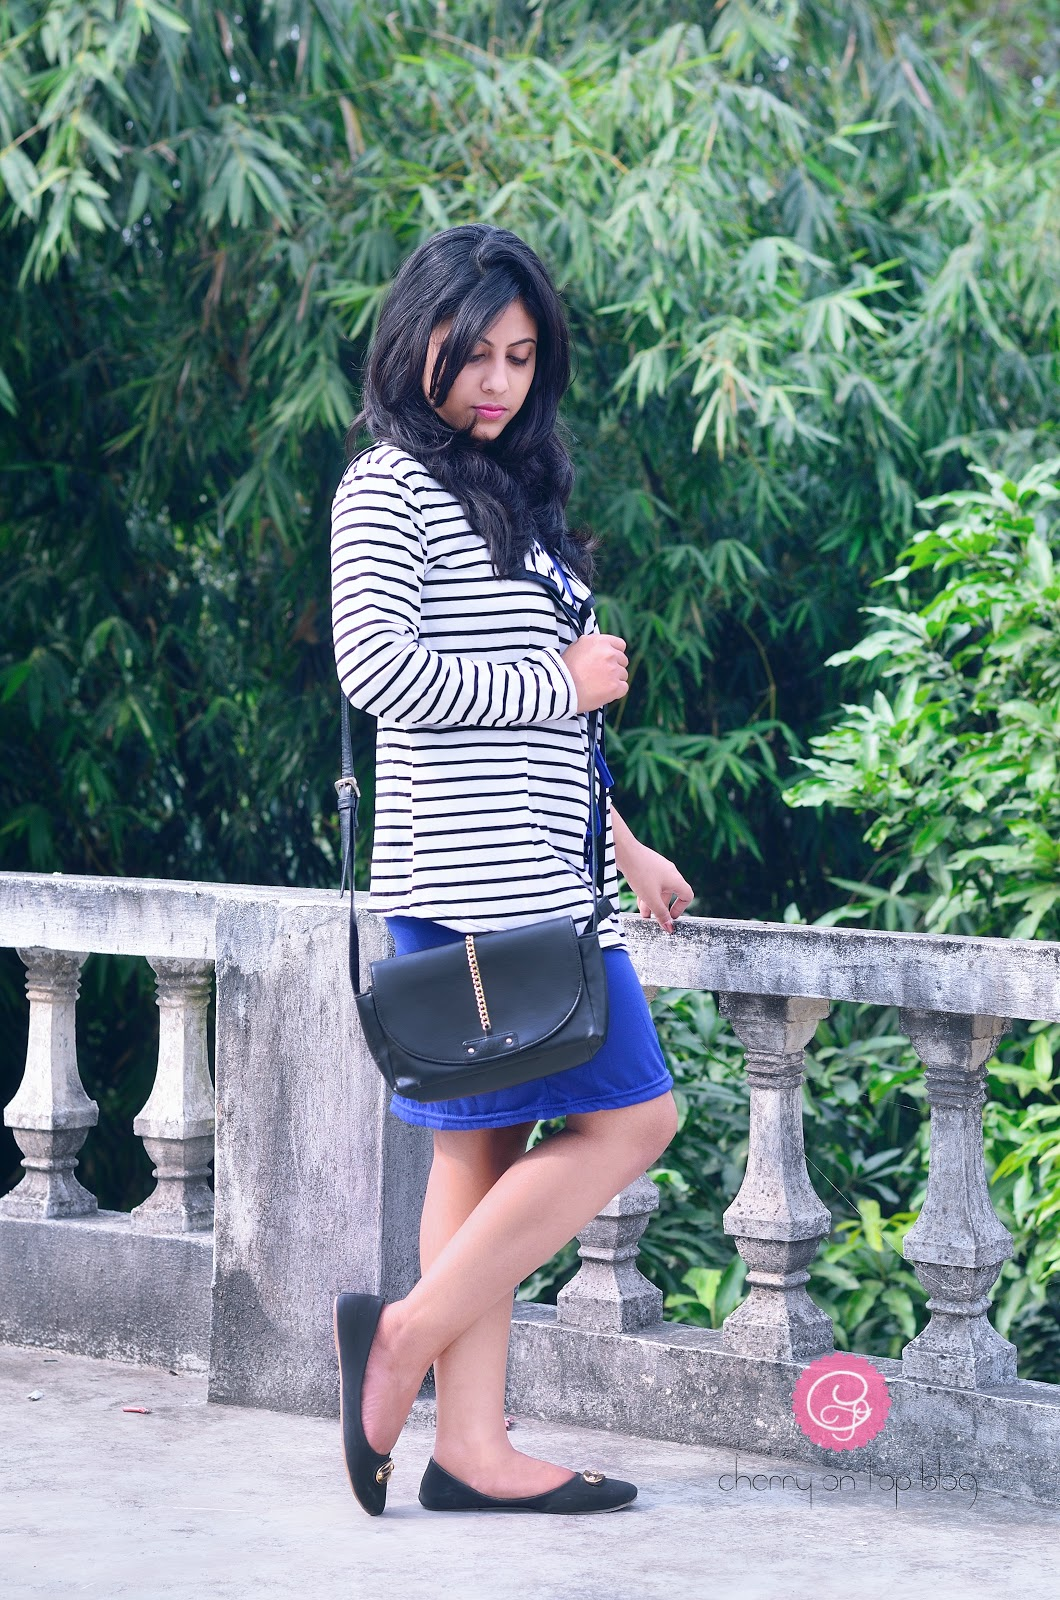 Embracing Winter| OOTD| Indian Fashion Blog| Sammydress.com| Cherry On Top Blog